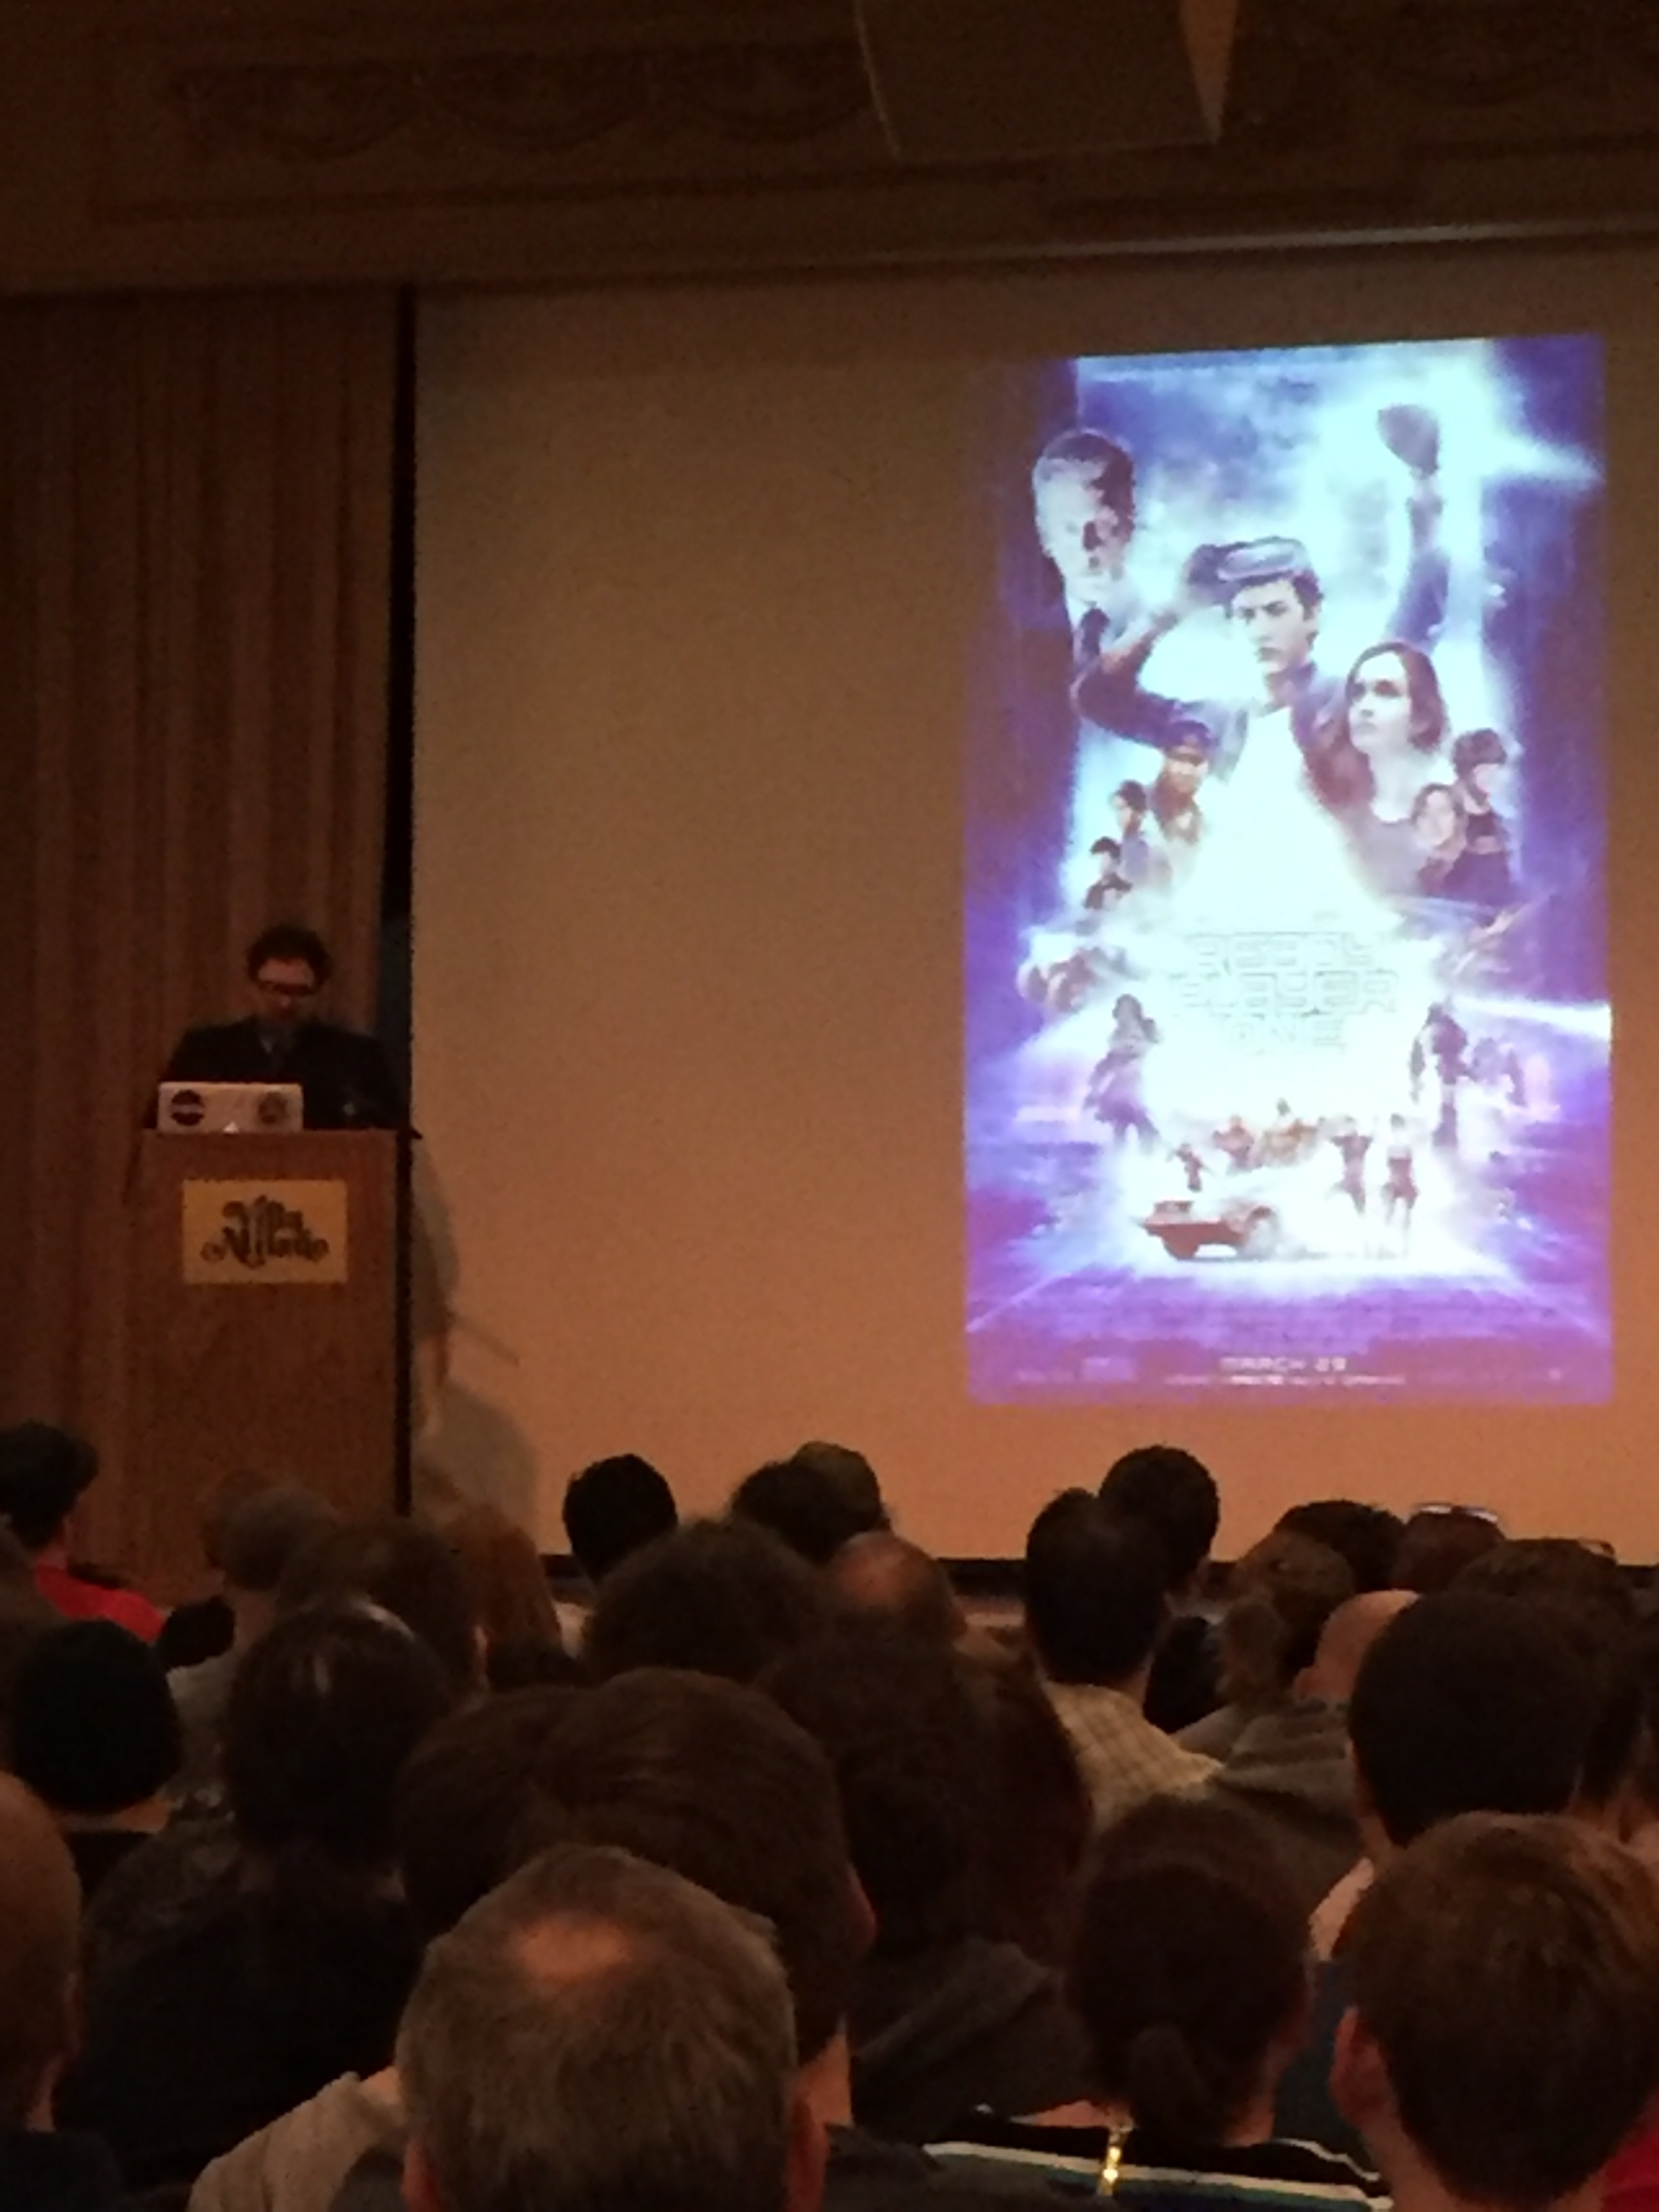 Pardon the shitty phone photography. [image description: Author Ernest Cline is standing behind a podium on stage talking about his life as an author and his most successful work, Ready Player One. The movie poster for Ready Player One is projected in the background.]